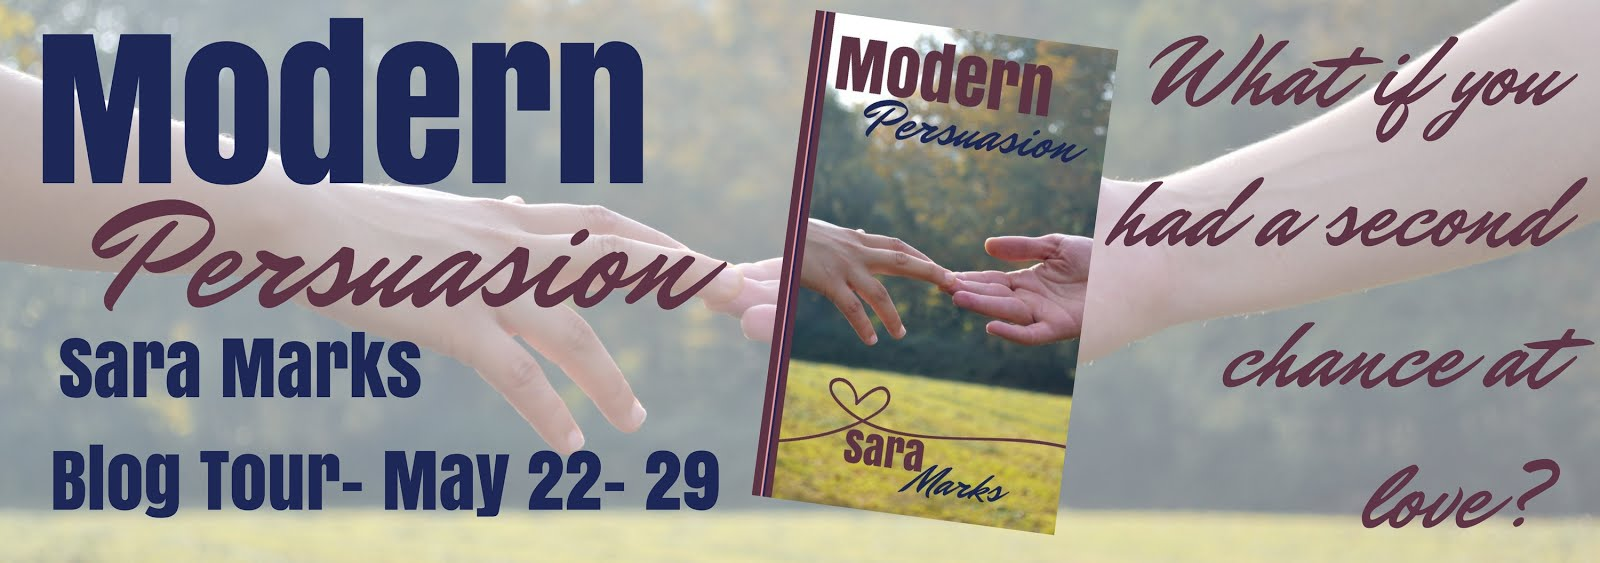 Modern Persuasion Blog Tour